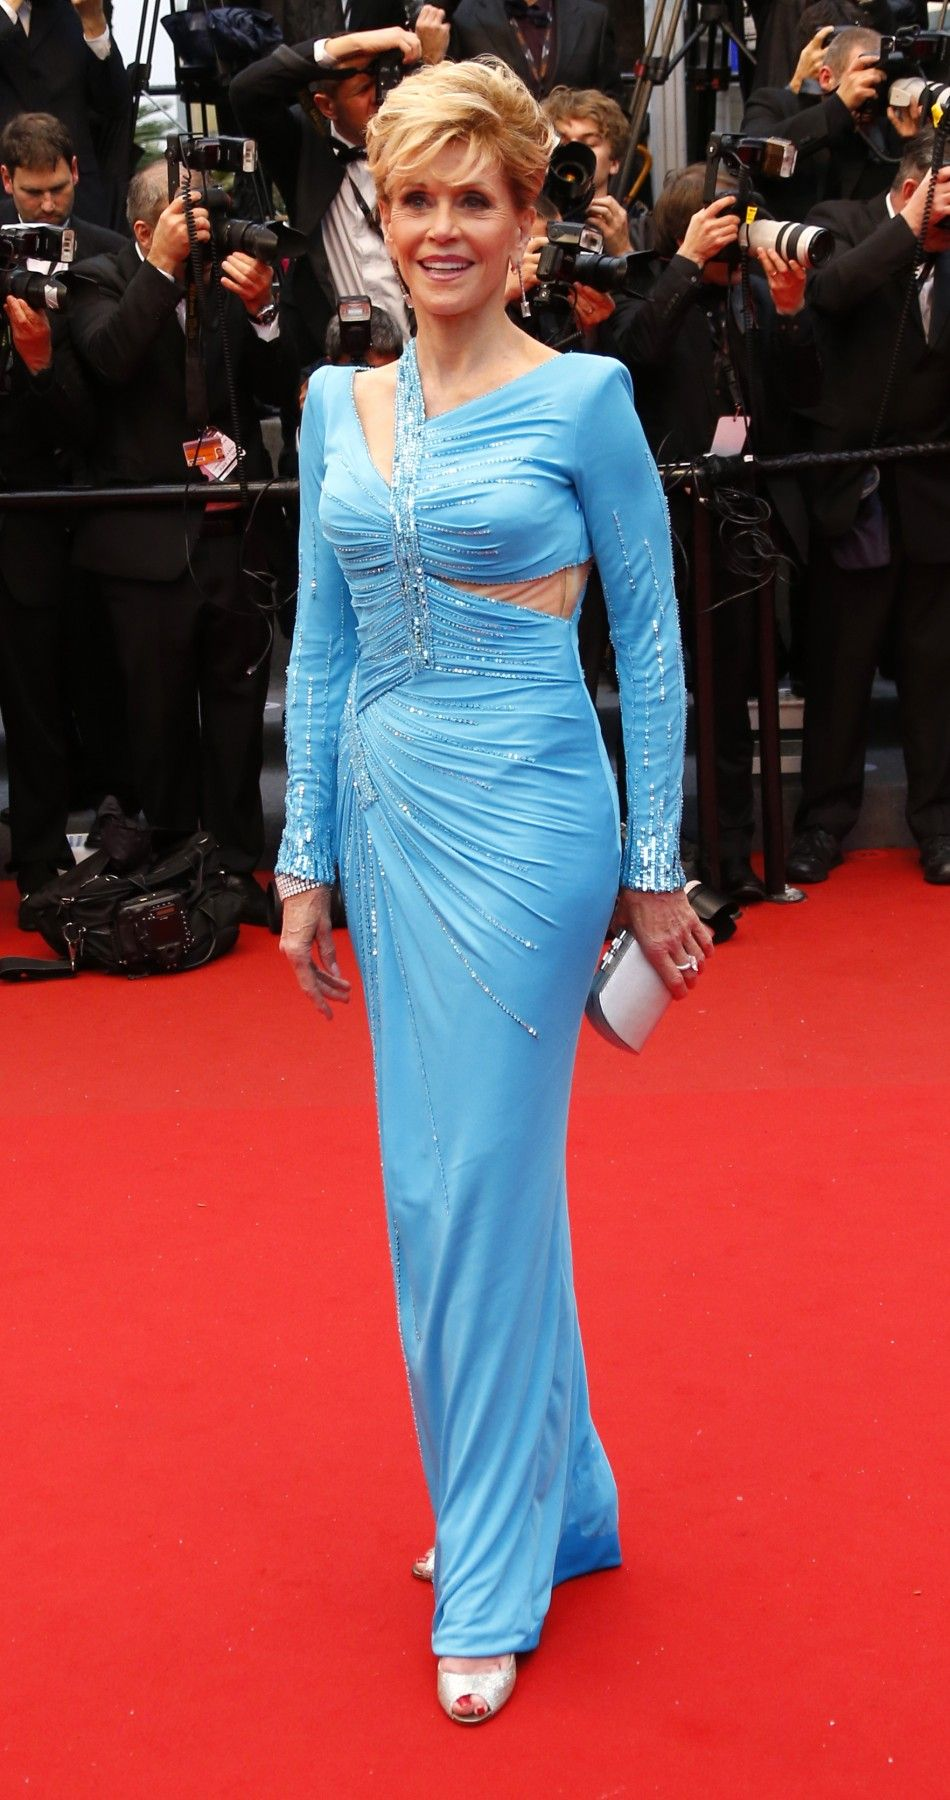 Actress JANE FONDA  poses on the red carpet as she arrives for a screening at the Cannes Film Festival -- May 2013